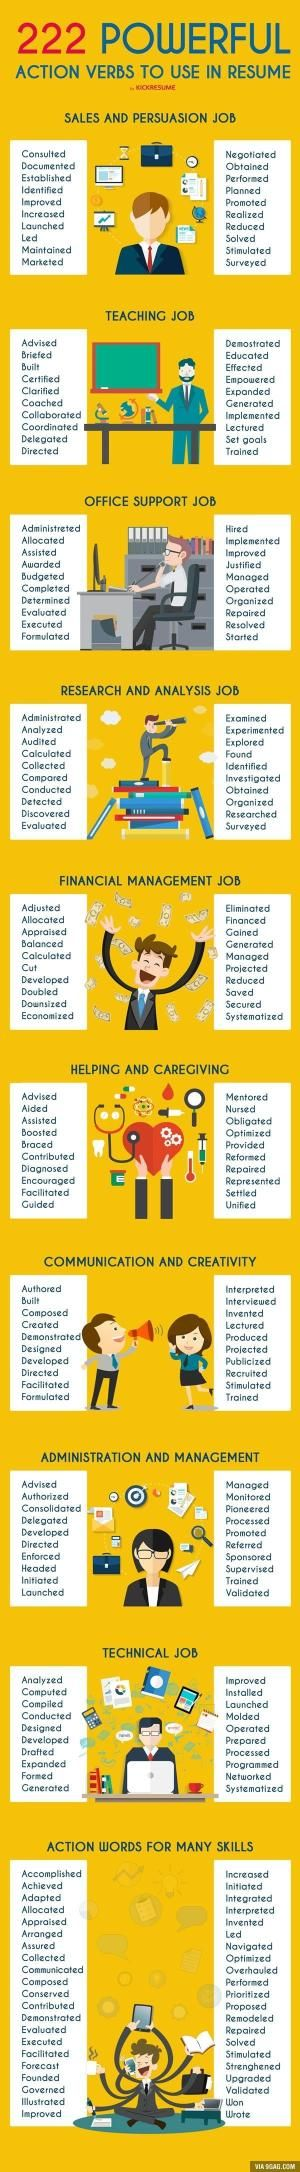 Best 25+ Resume verbs ideas on Pinterest Resume, Resume tips and - action verbs for resume